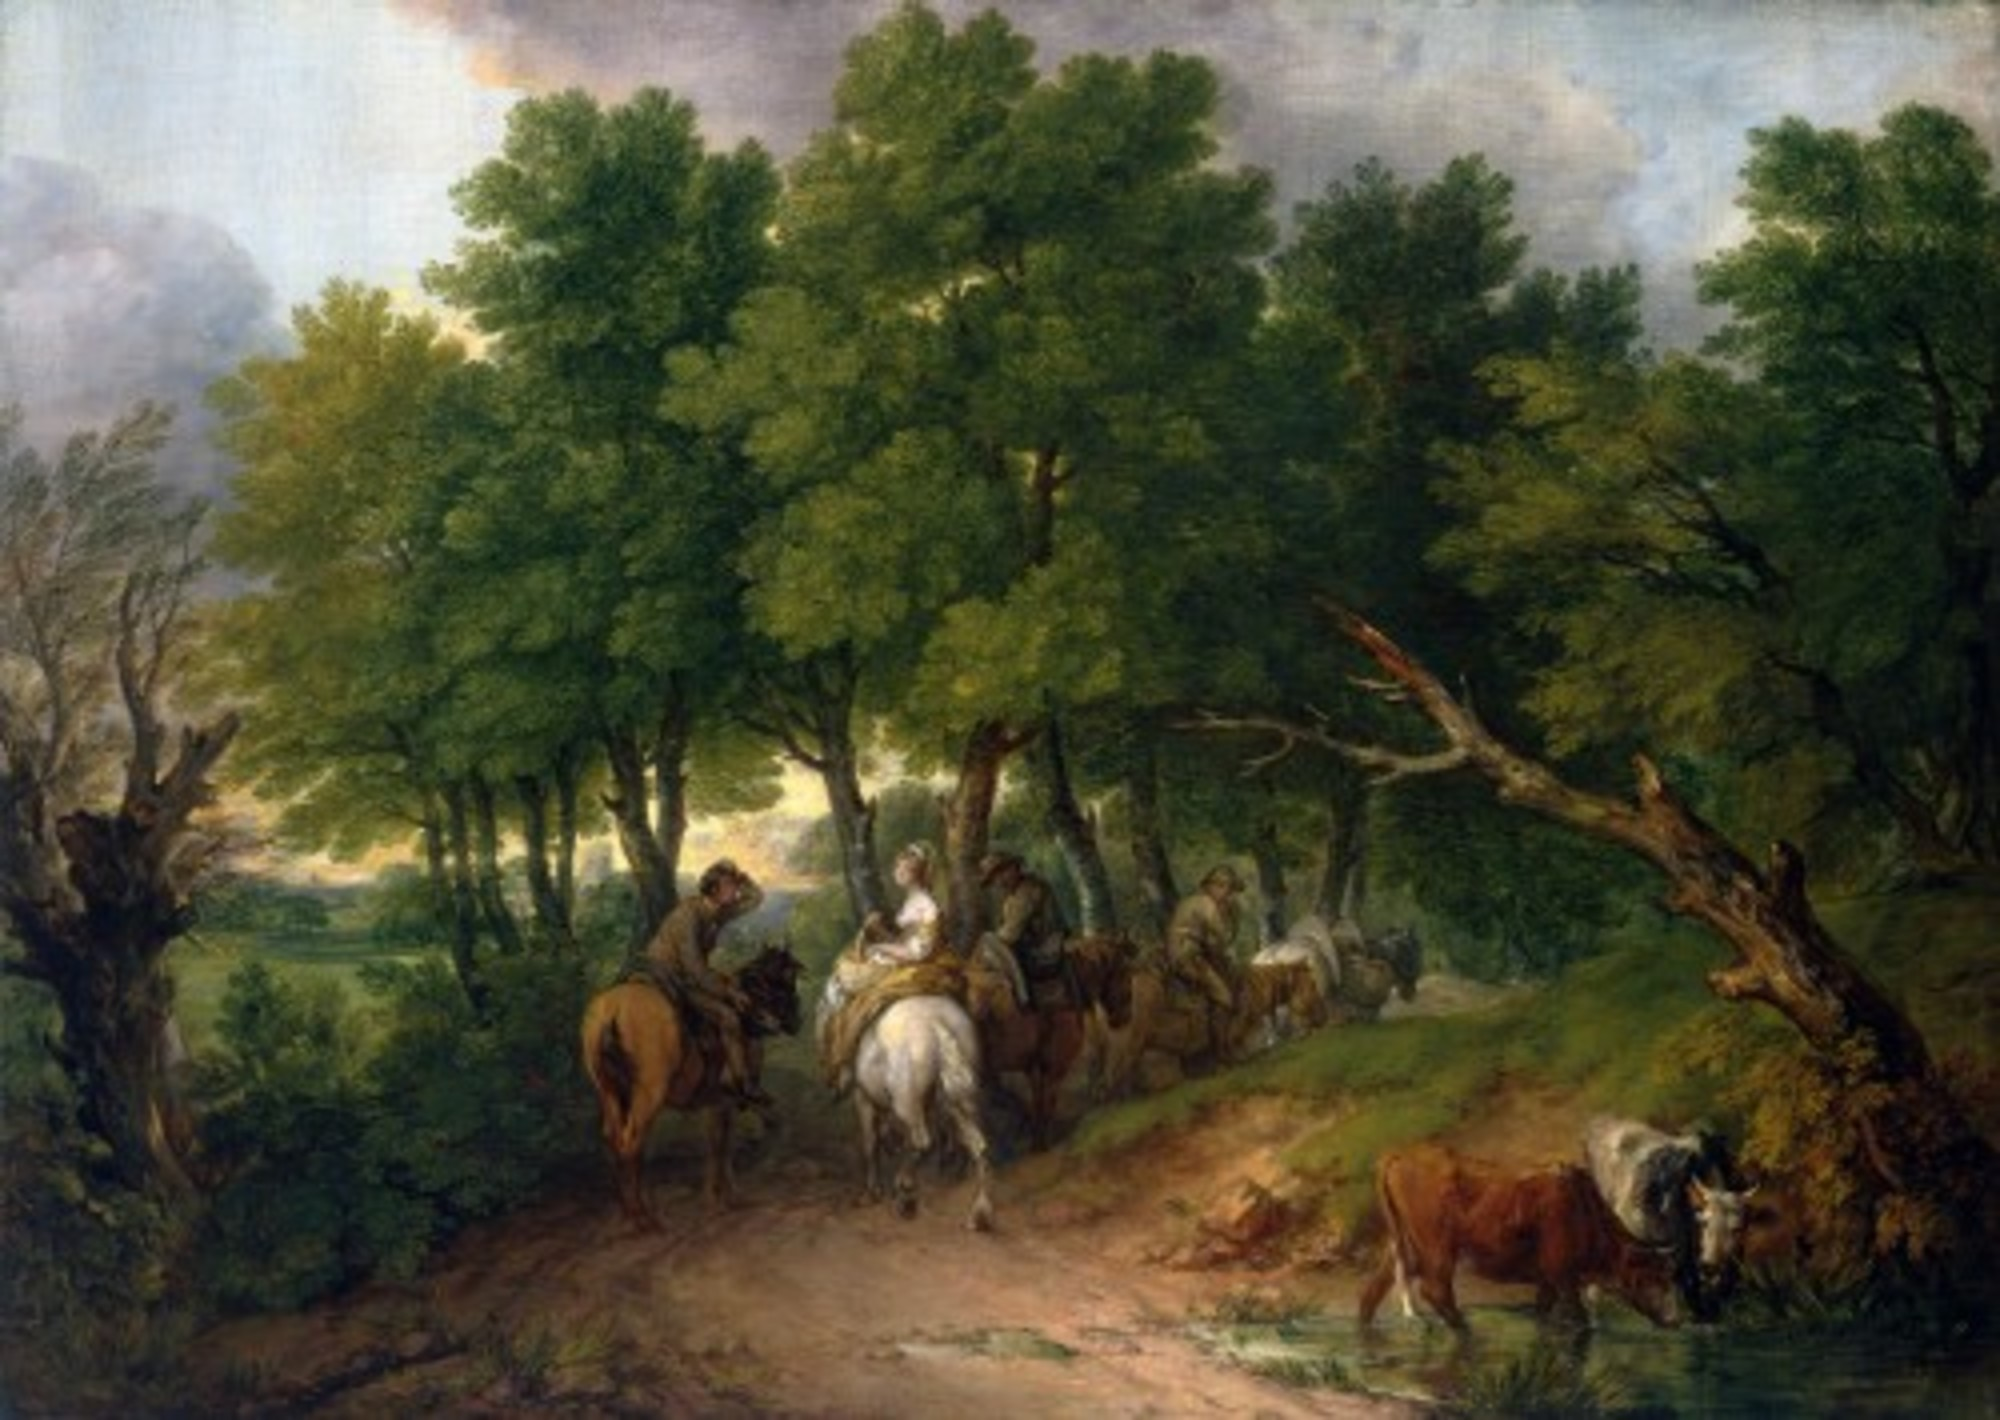 Thomas_Gainsborough_-_Road_from_Market_-_Google_Art_Project.jpg